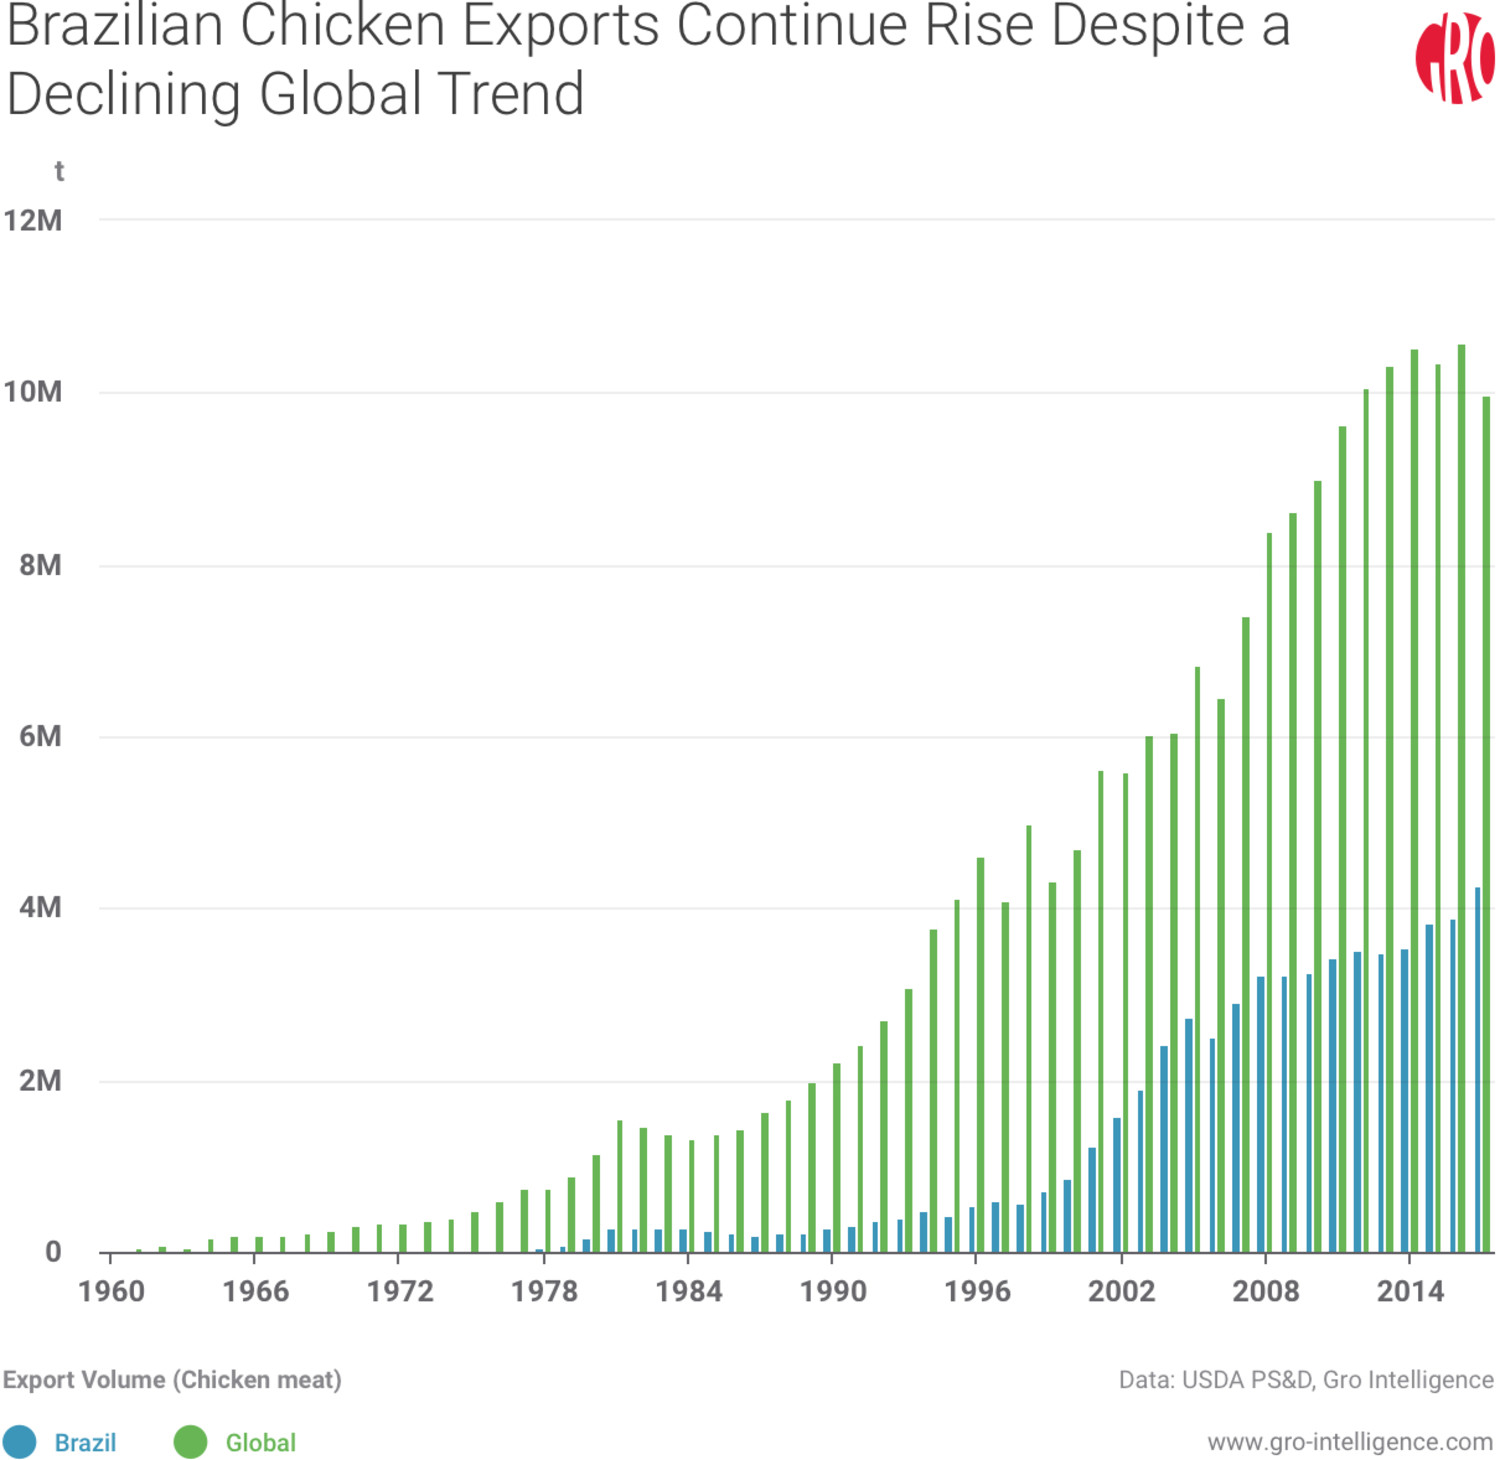 Brazilian Chicken Exports Continue Rise Despite a Declining Global Trend